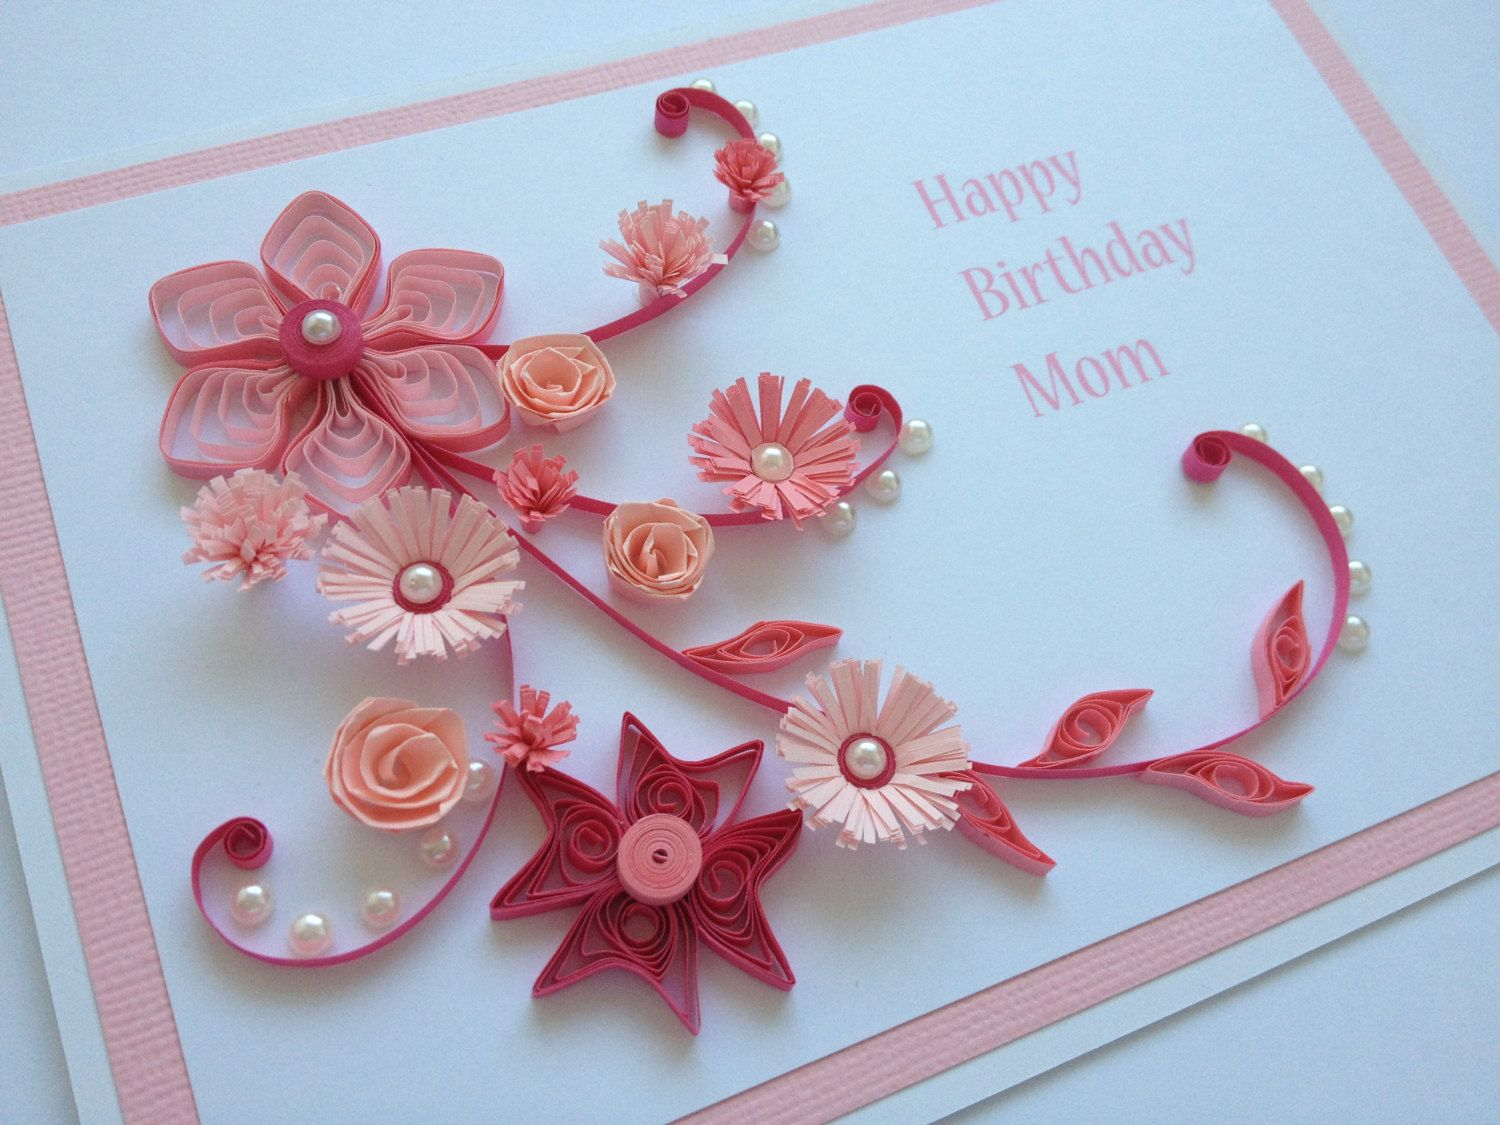 Handmade Quilled paper Birthday Card. Flowers Mum Mom by